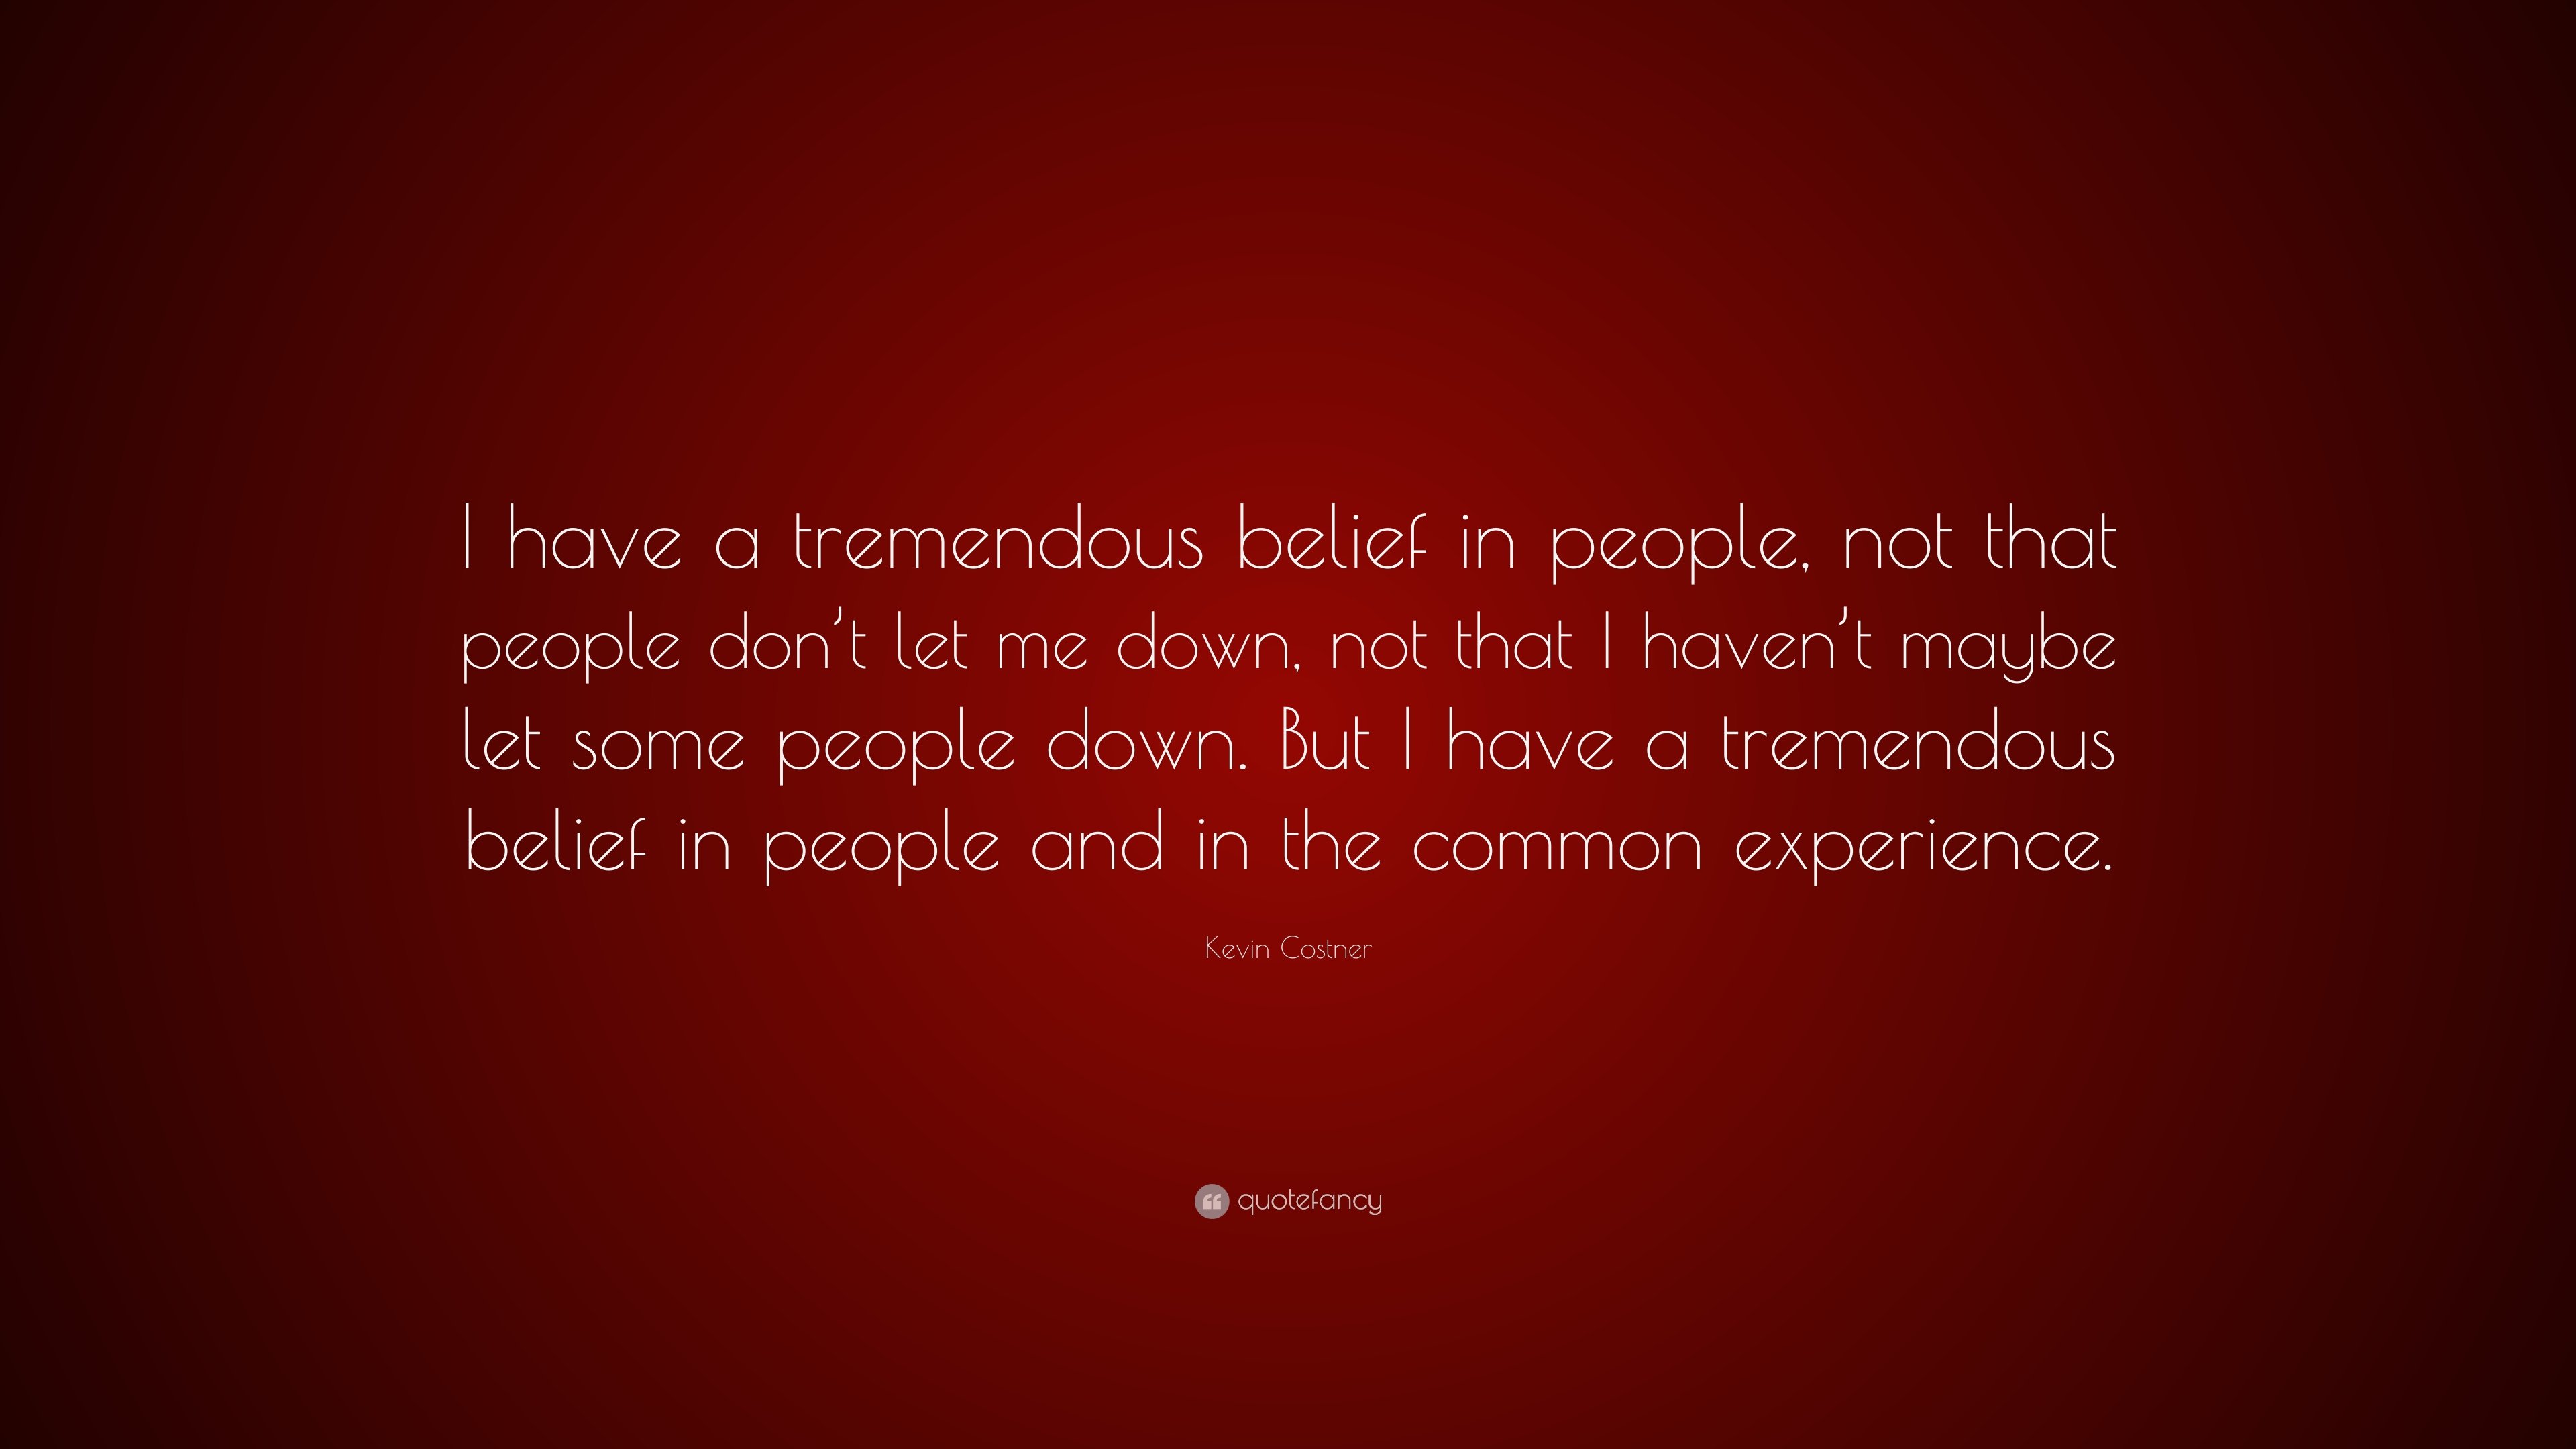 Kevin Costner Quote I Have A Tremendous Belief In People Not That